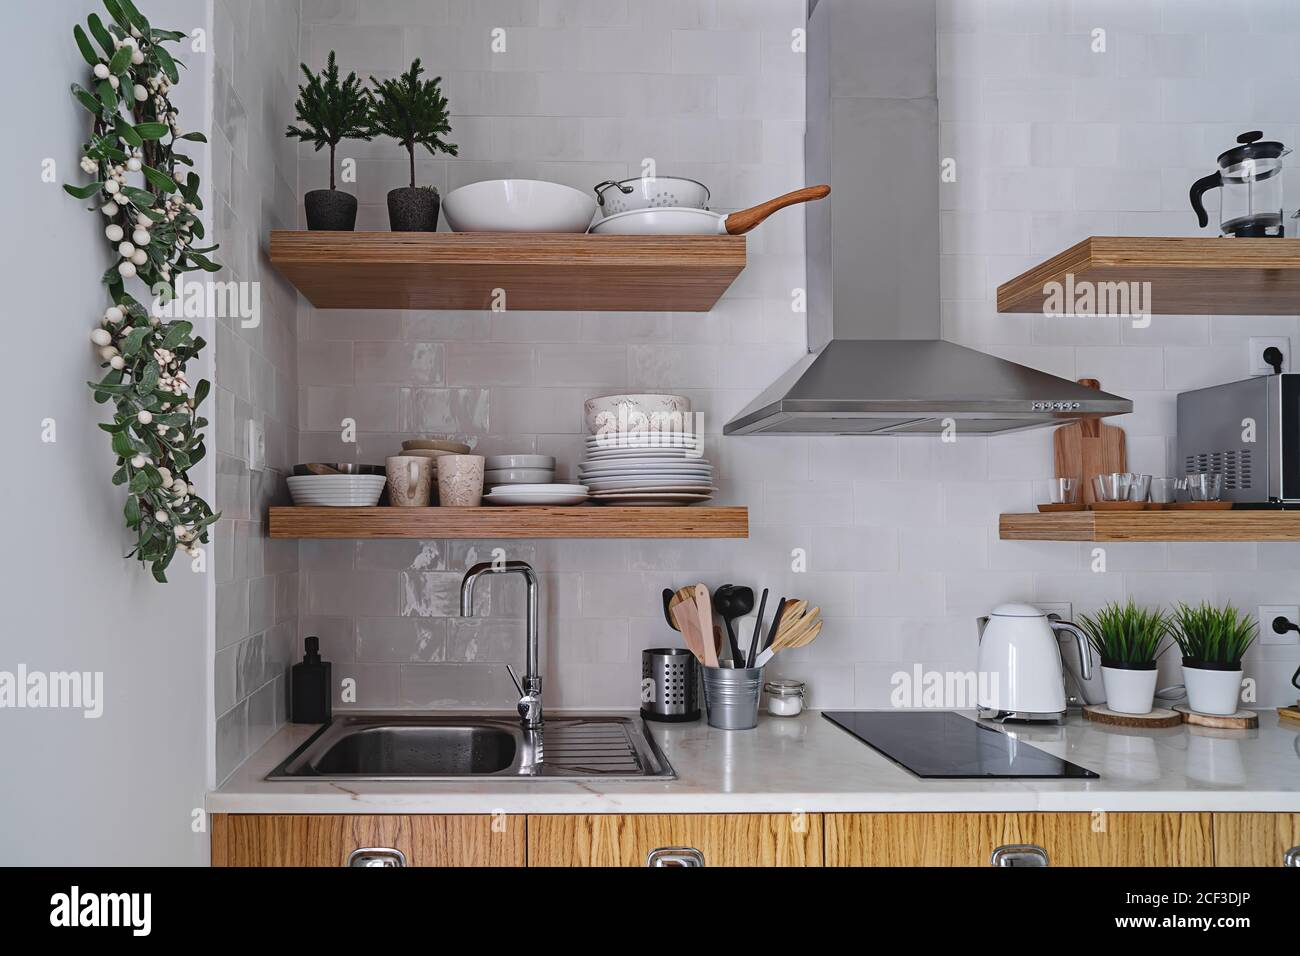 Modern Kitchen Interior With White Brick Tile Wall In Scandinavian Style Wooden Shelf And Tableware Stock Photo Alamy